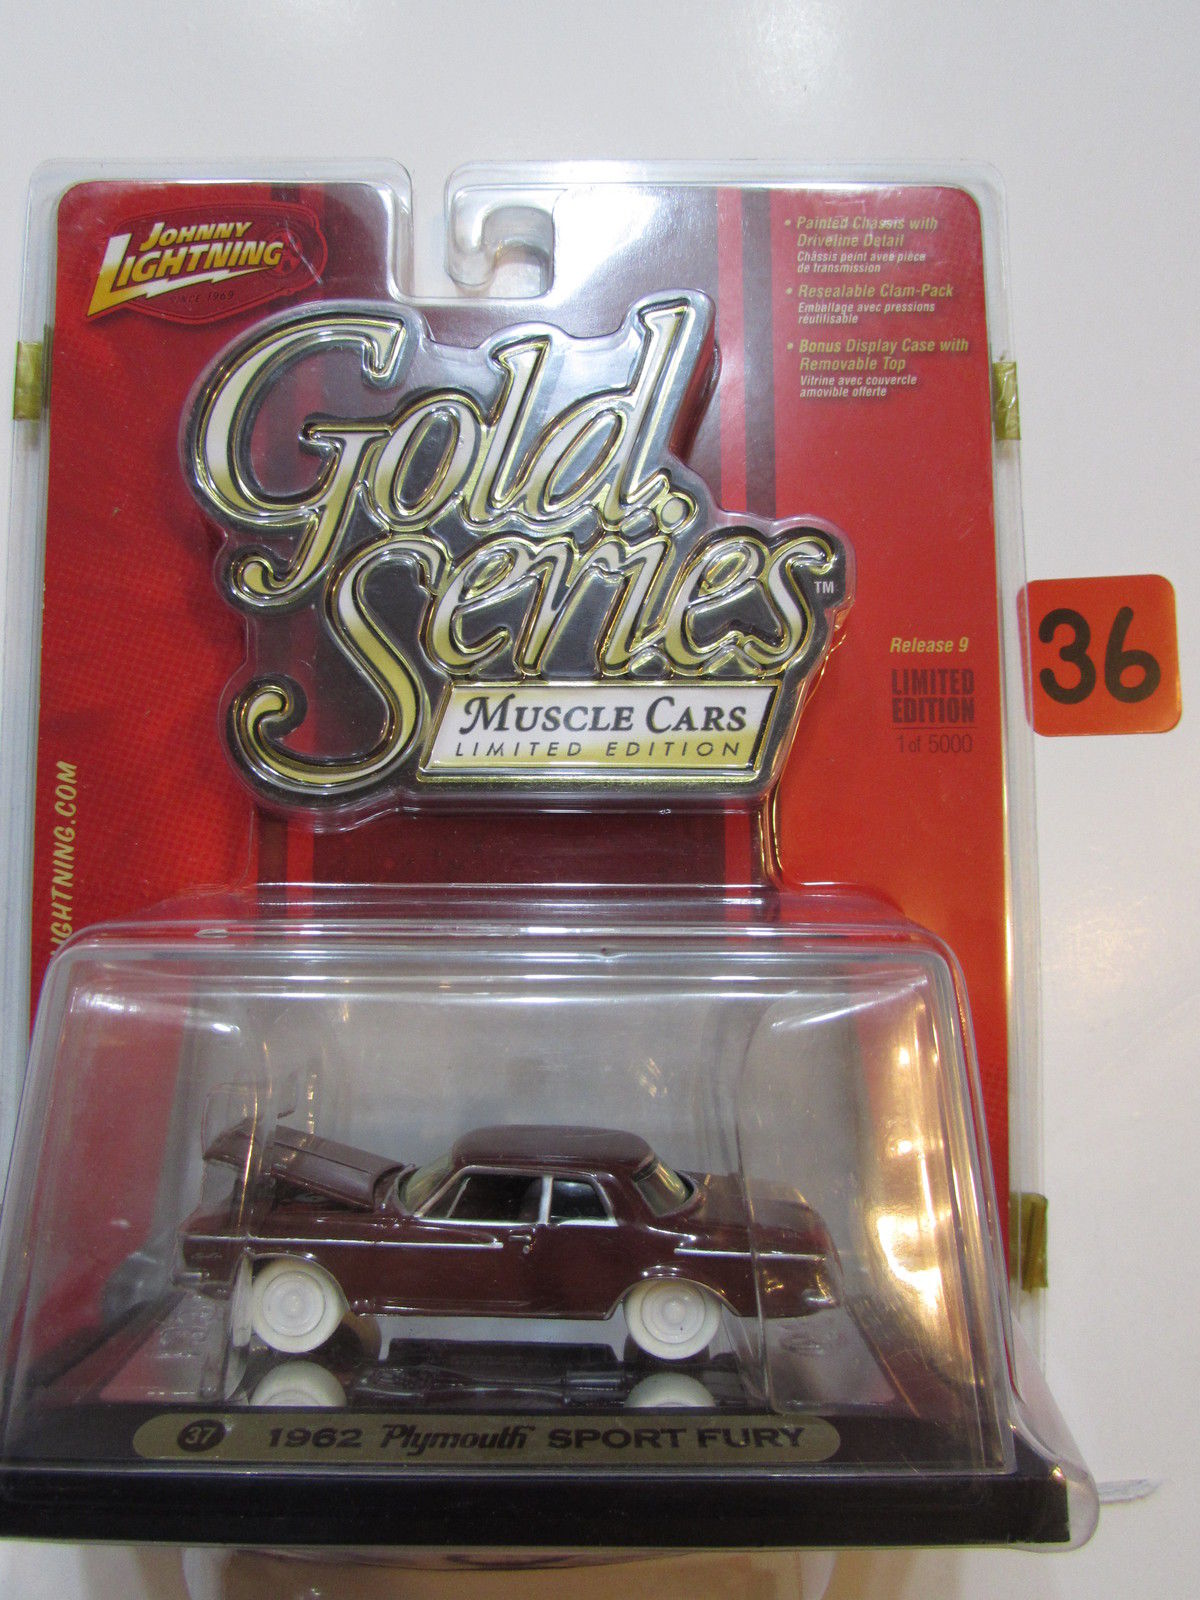 JOHNNY LIGHTNING GOLD SERIES MUSCLE - 1962 PLYMOUTH SPORT FURY WHITE LIGHTNING